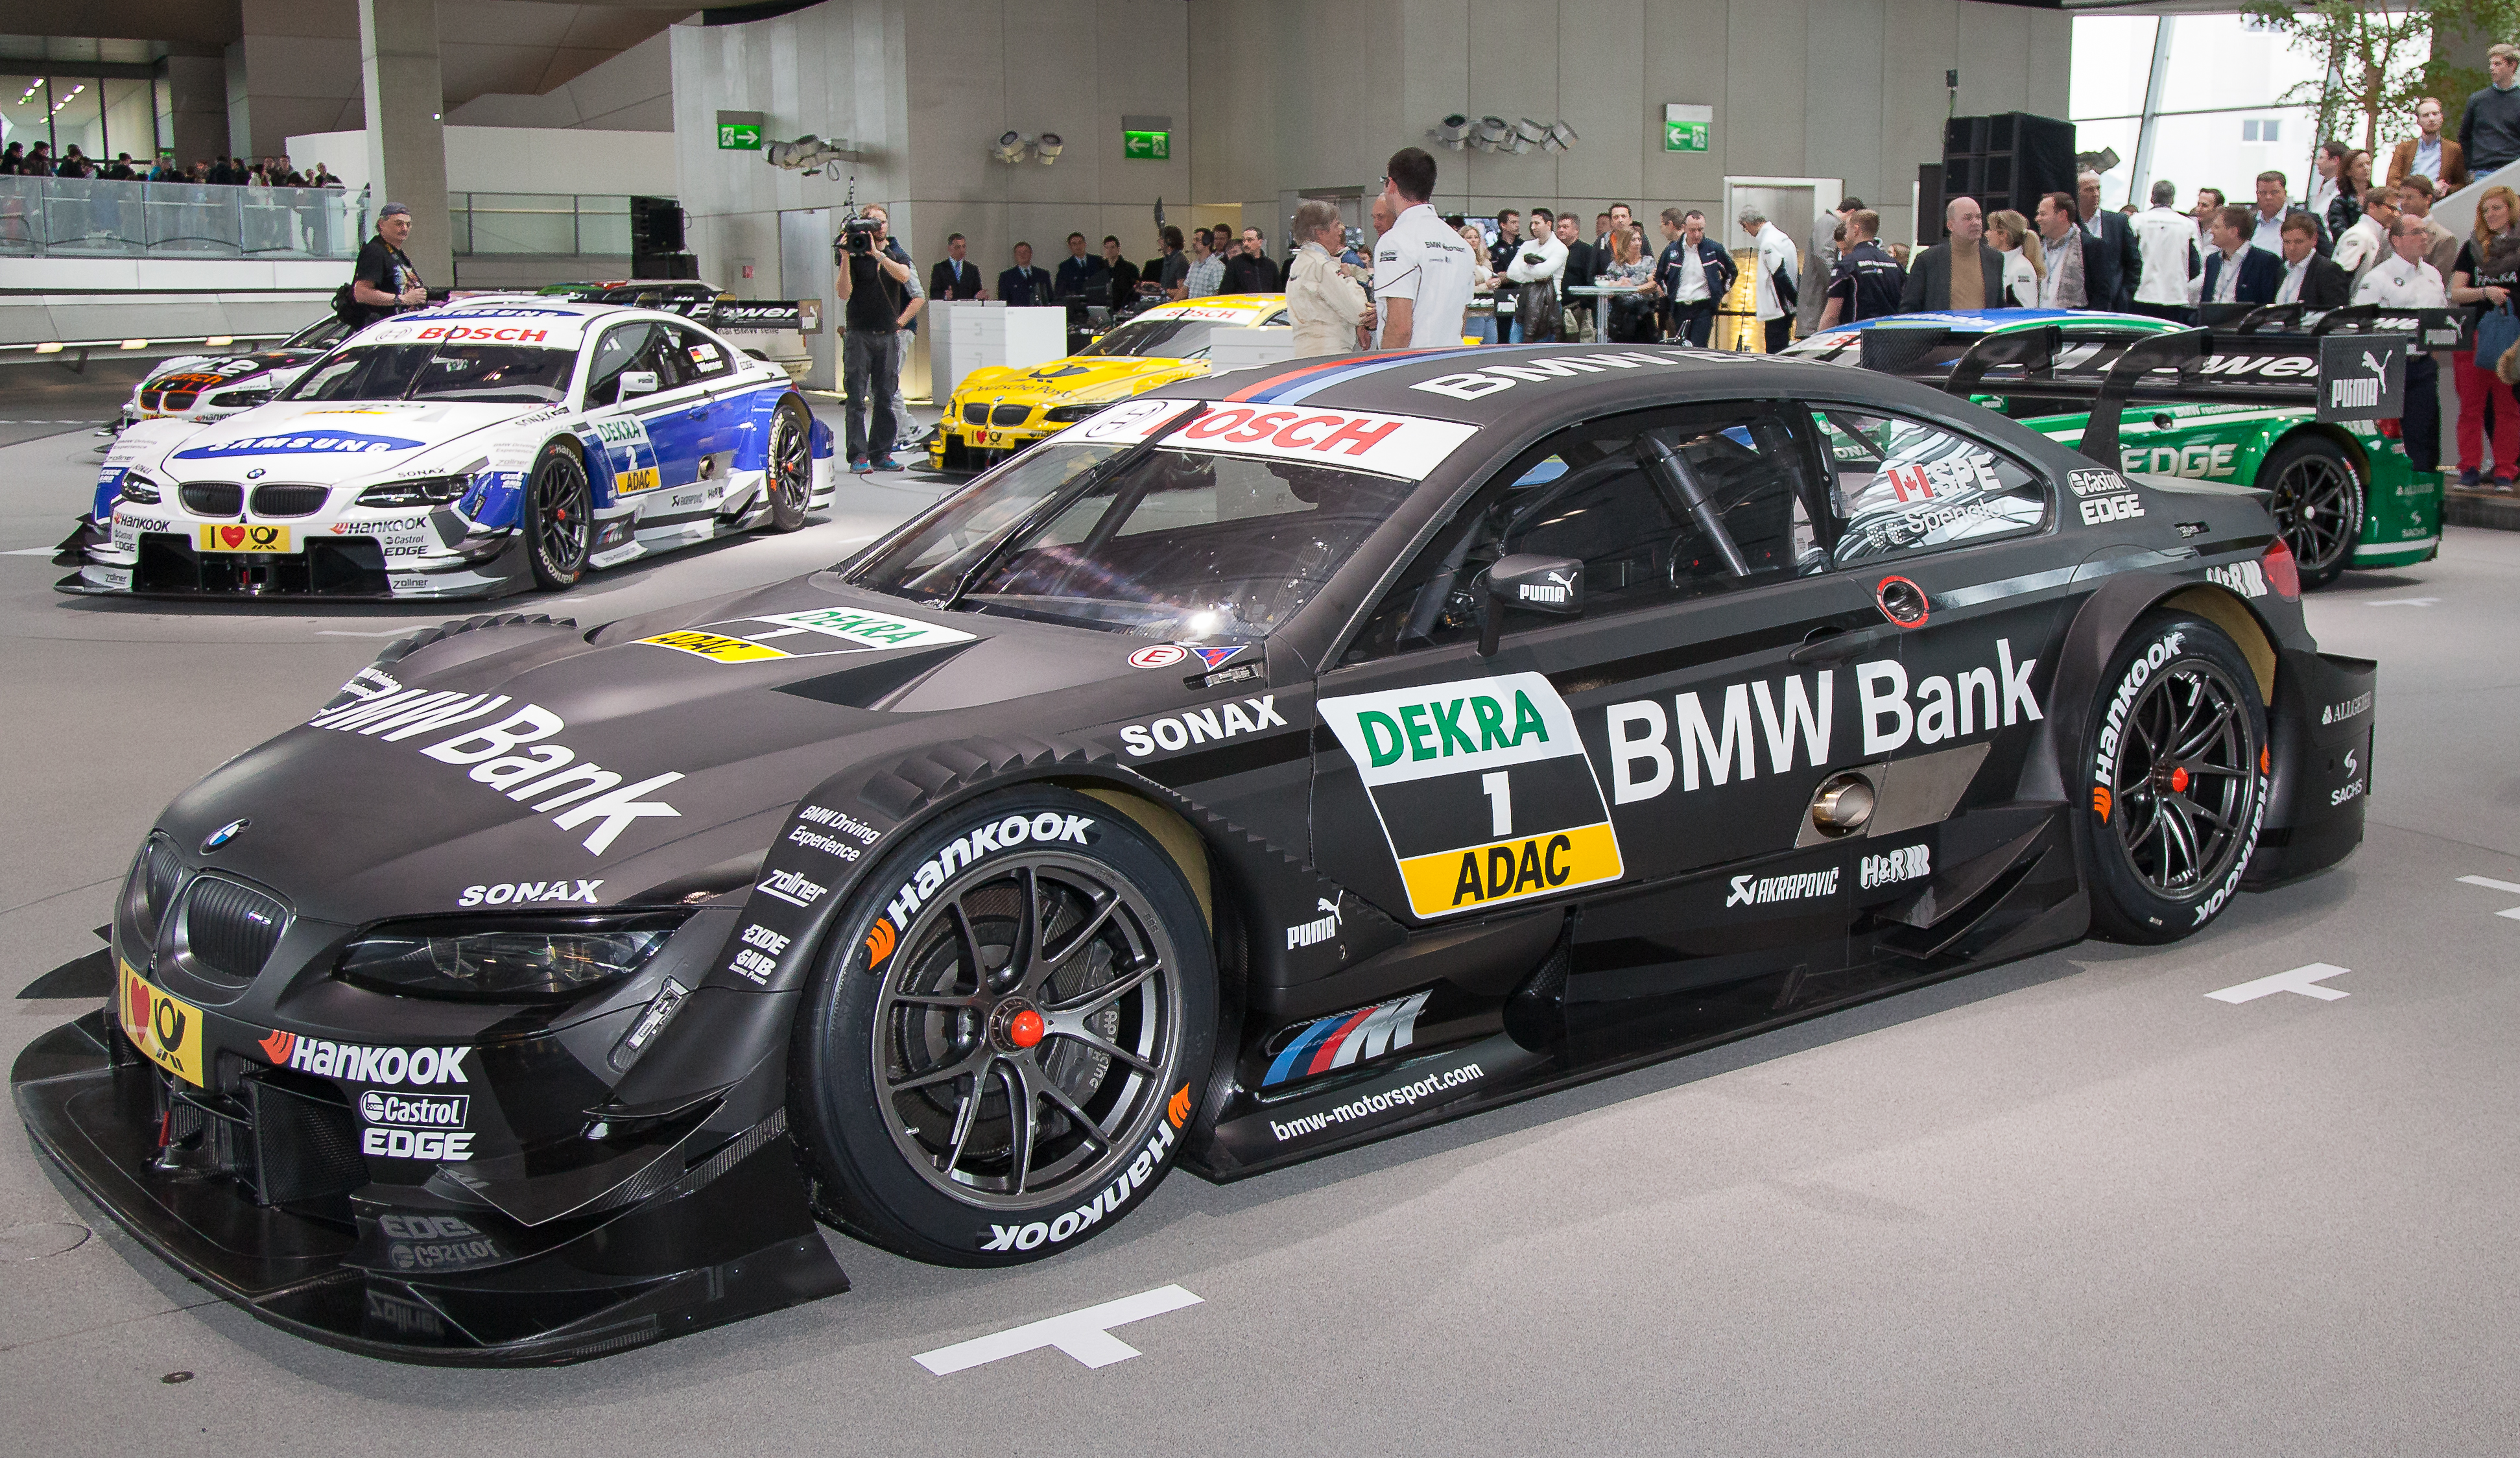 Bmw Motorsport Launches Its Cars For The 2013 Dtm Season